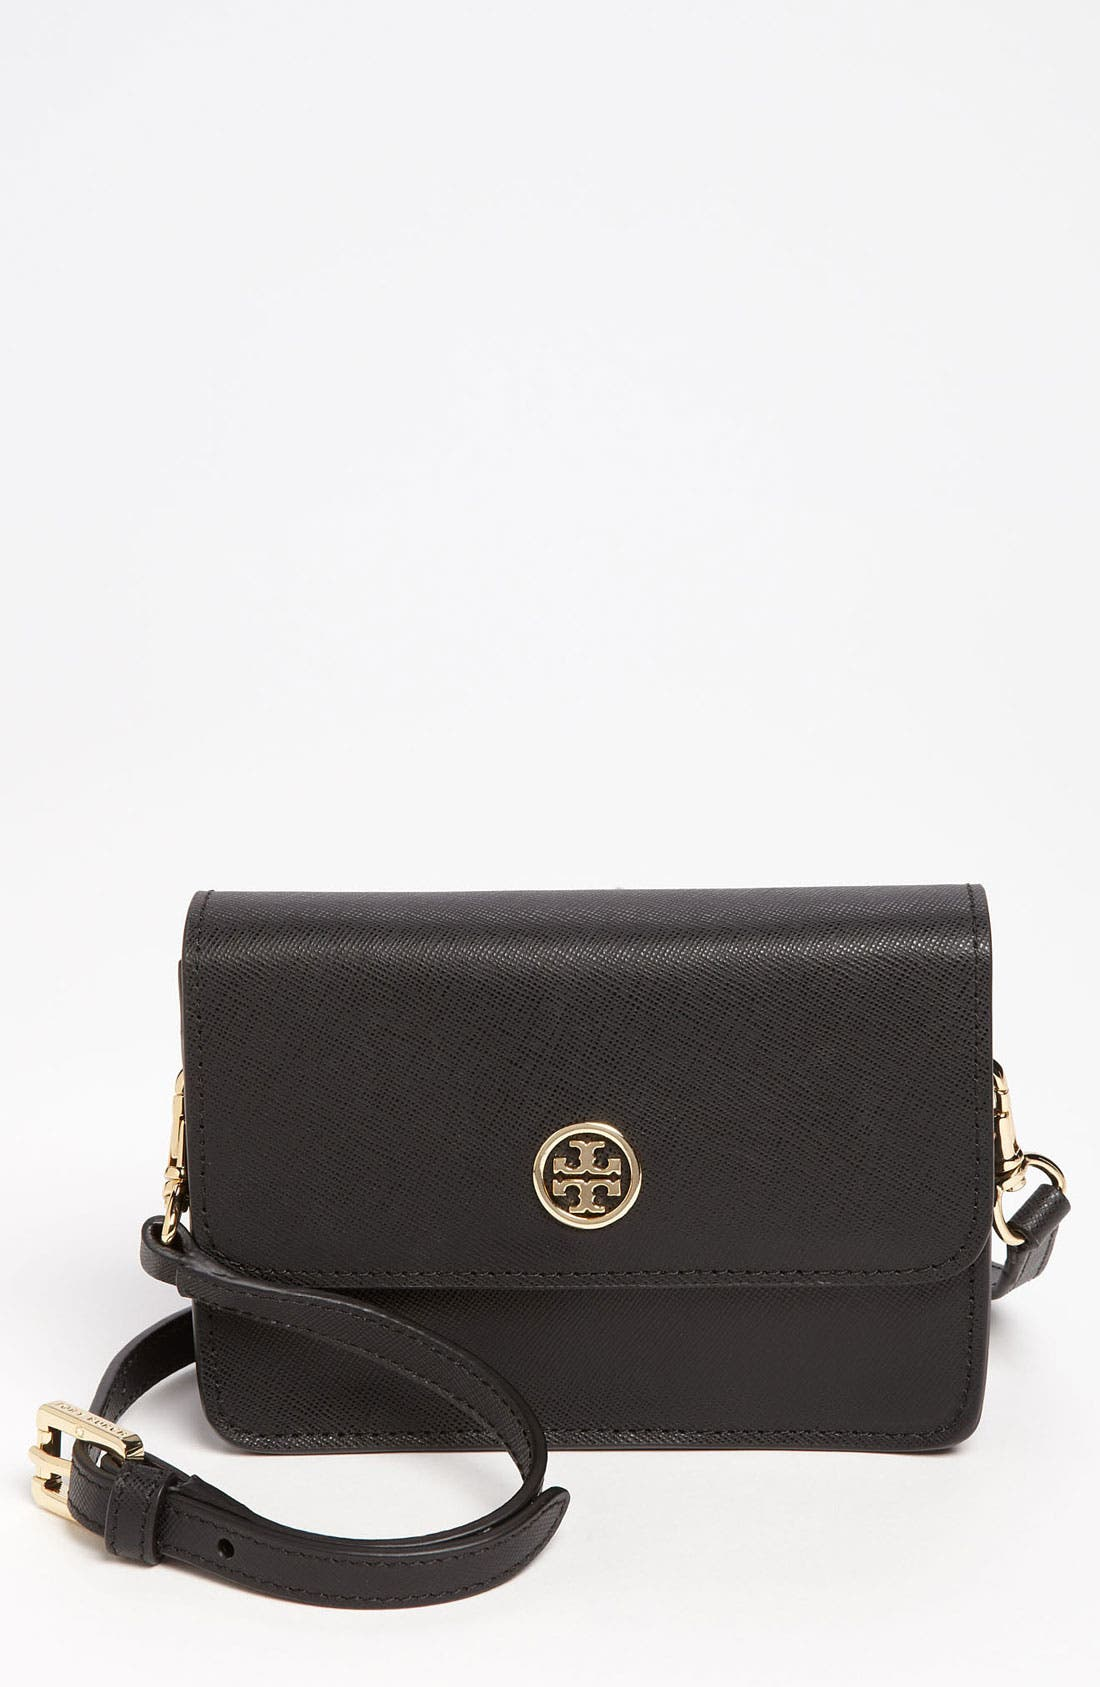 Alternate Image 1 Selected - Tory Burch 'Robinson - Mini' Leather Crossbody Bag